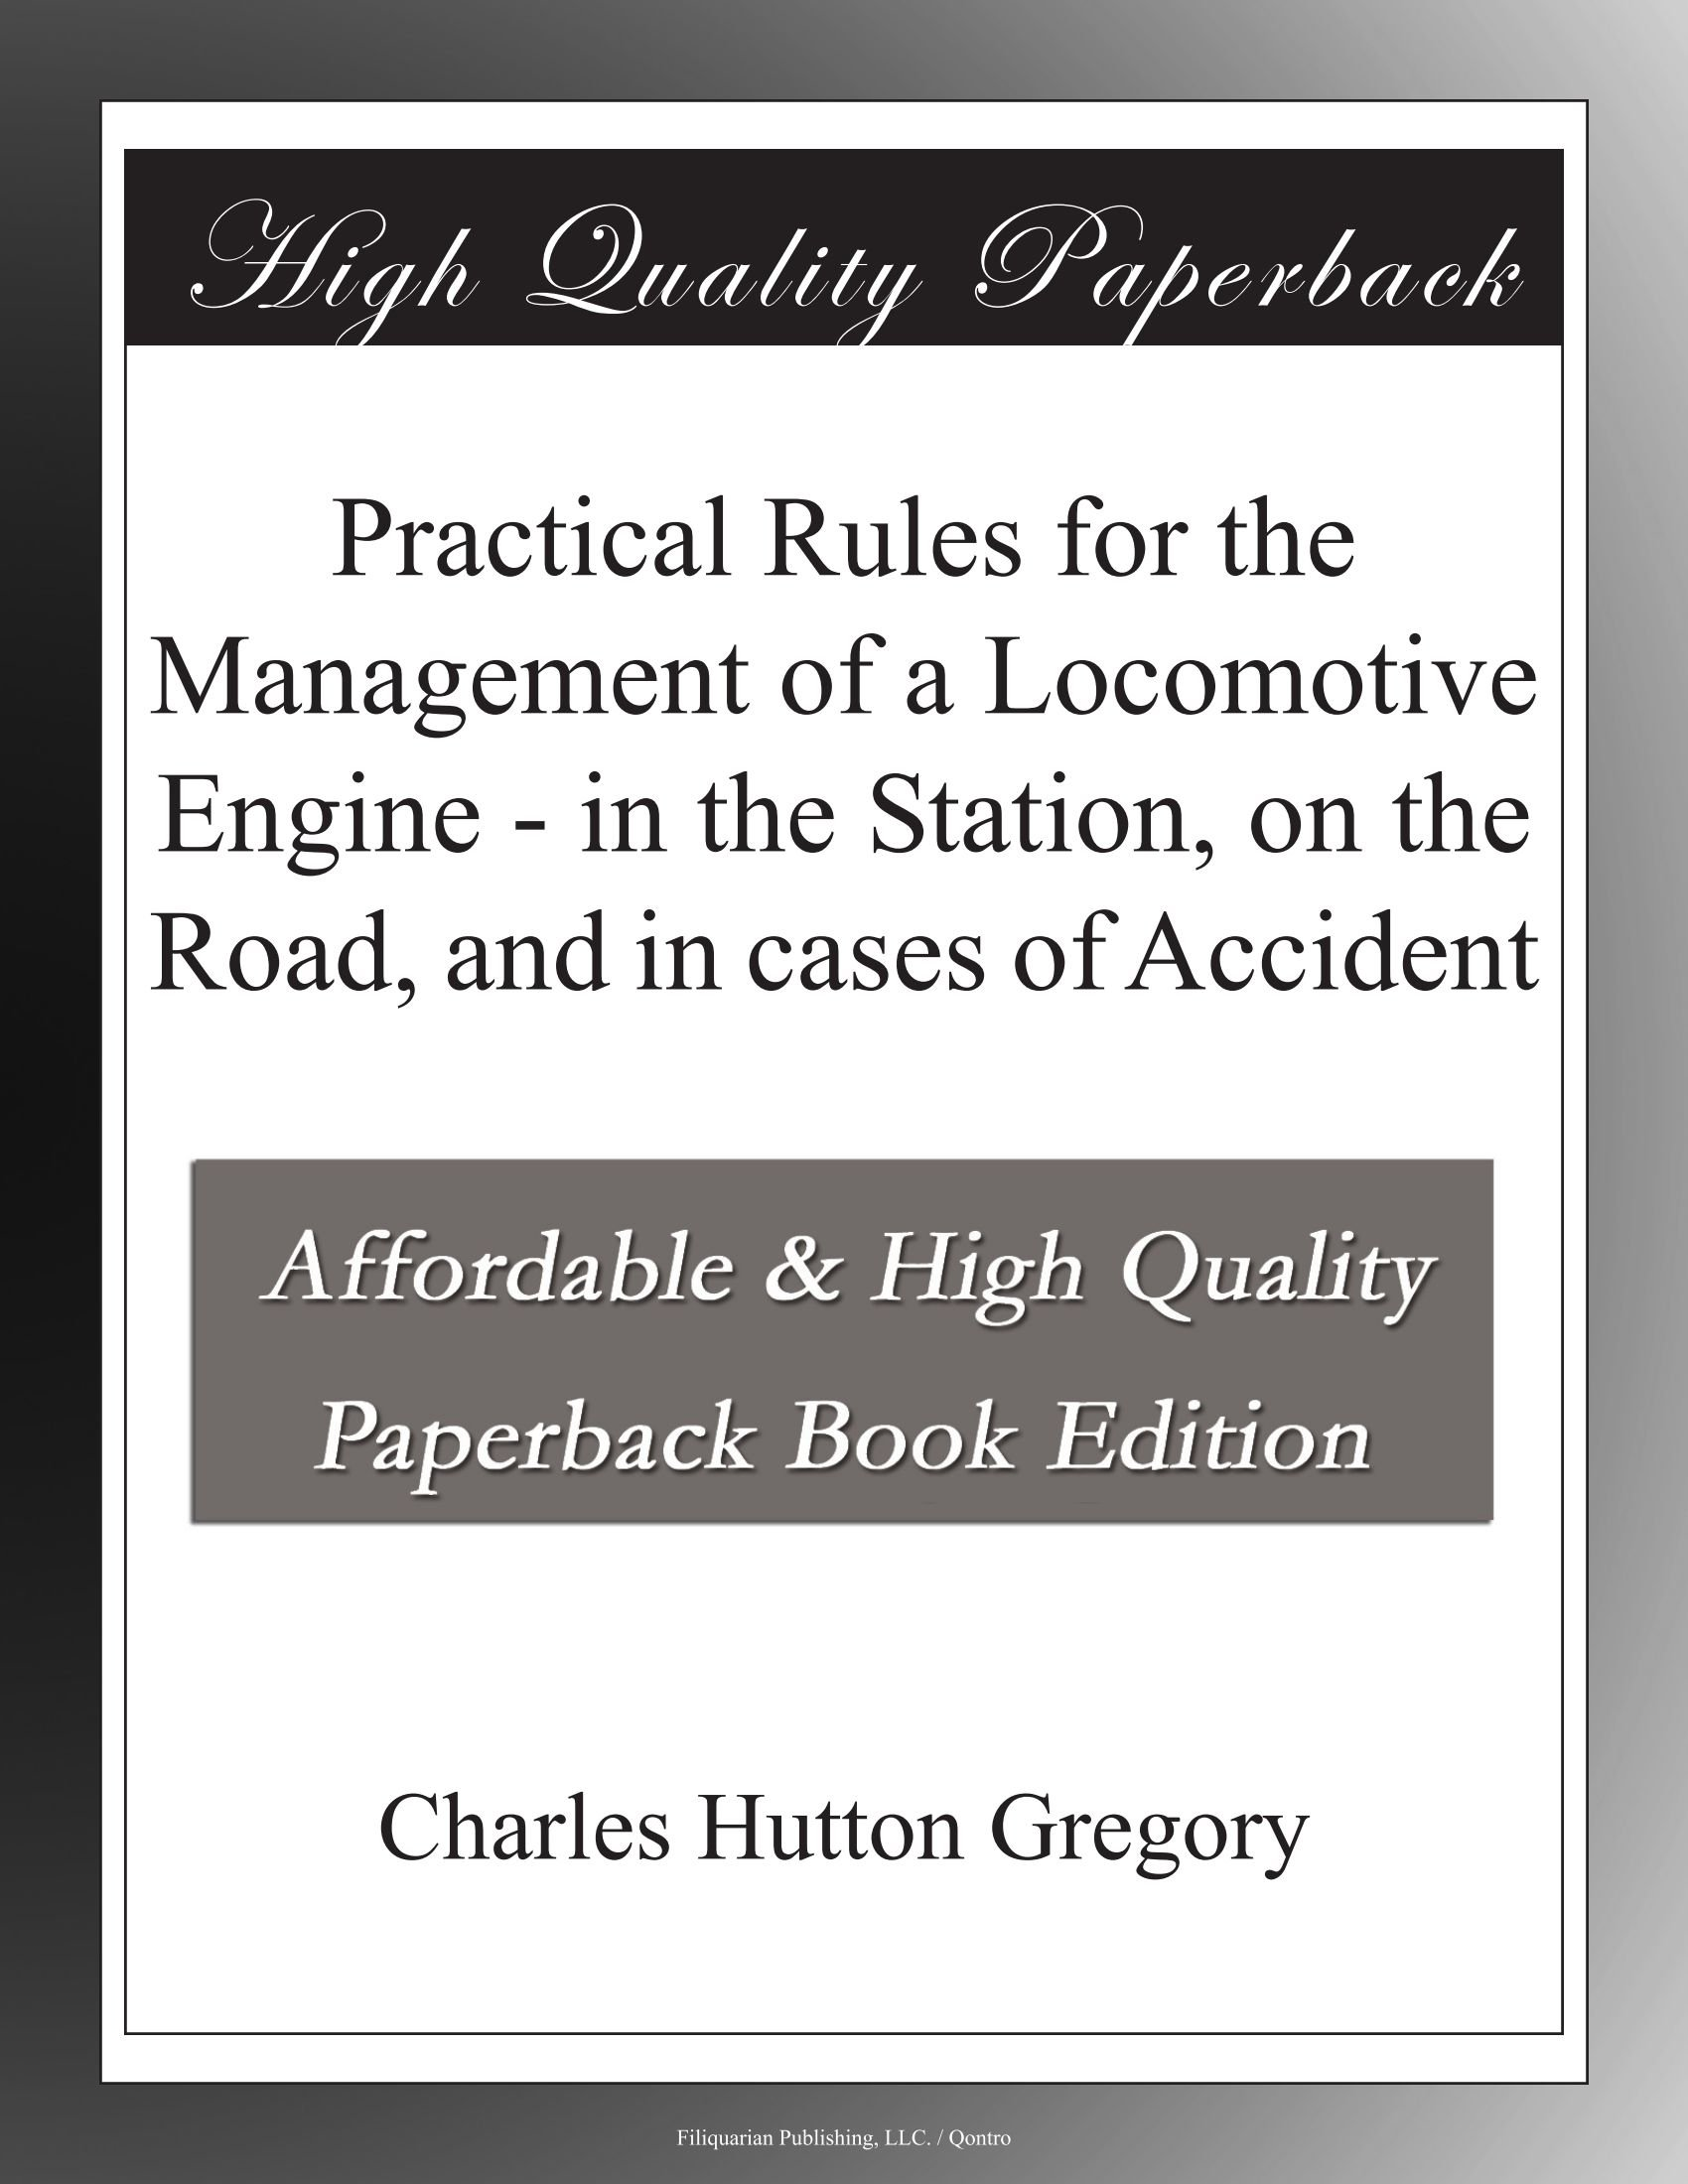 Download Practical Rules for the Management of a Locomotive Engine - in the Station, on the Road, and in cases of Accident pdf